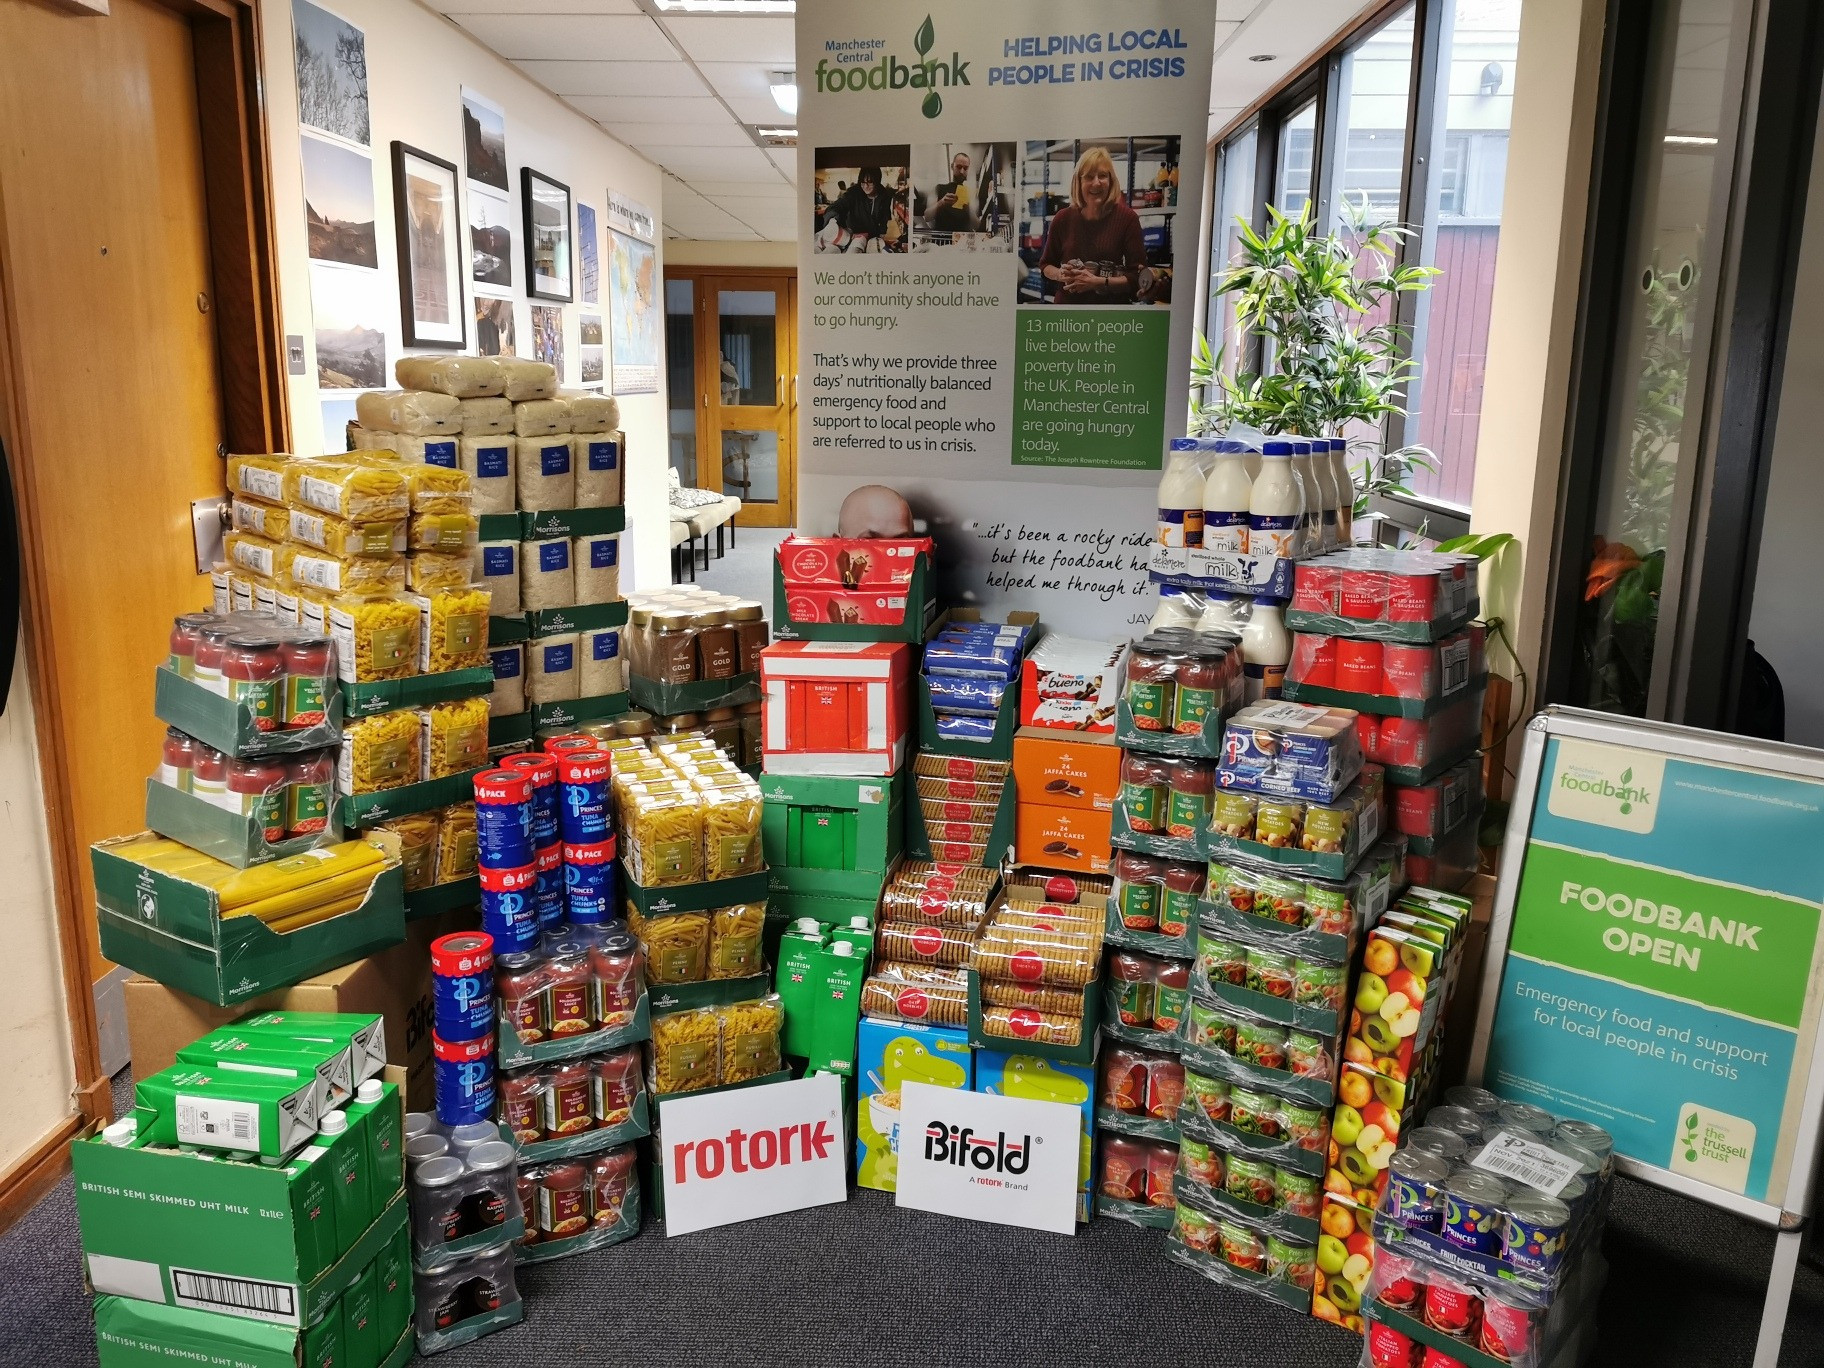 Rotork supports Manchester Central Foodbank